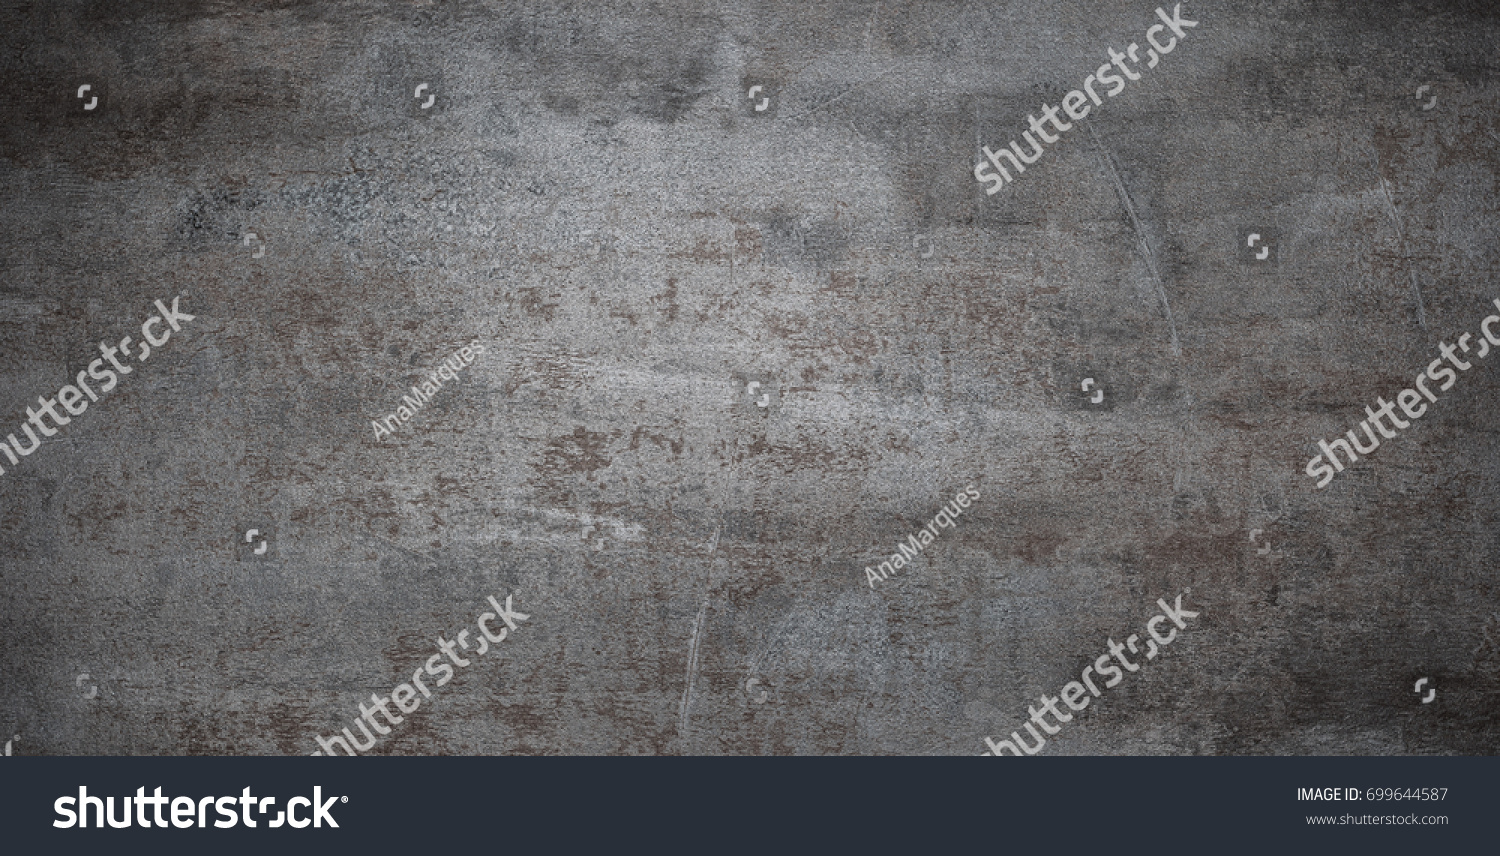 Grunge metal background or texture with scratches and cracks #699644587